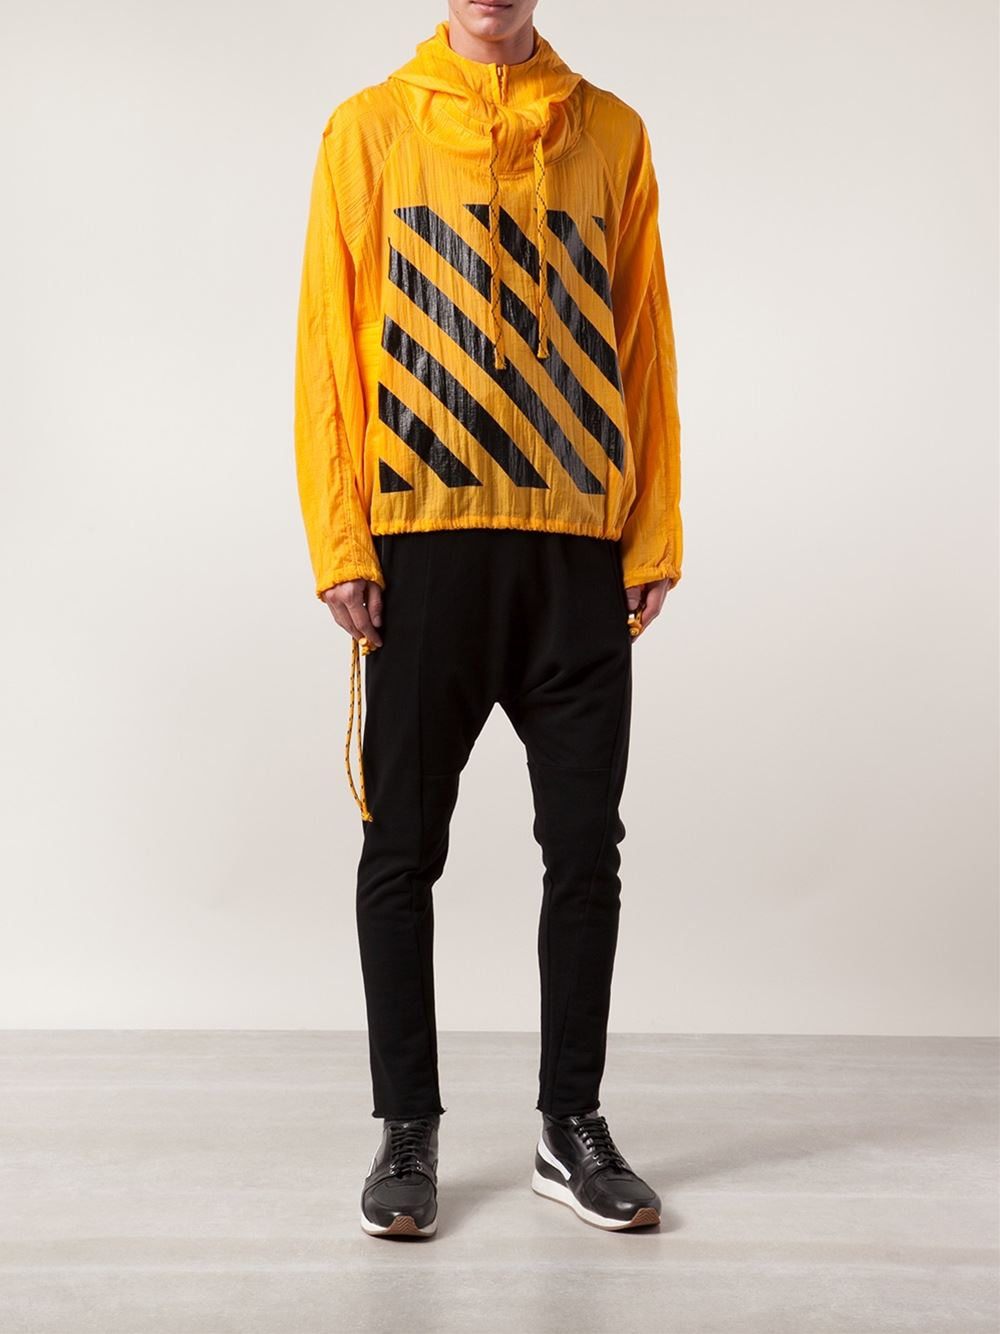 off white c o virgil abloh windbreaker jacket in yellow. Black Bedroom Furniture Sets. Home Design Ideas